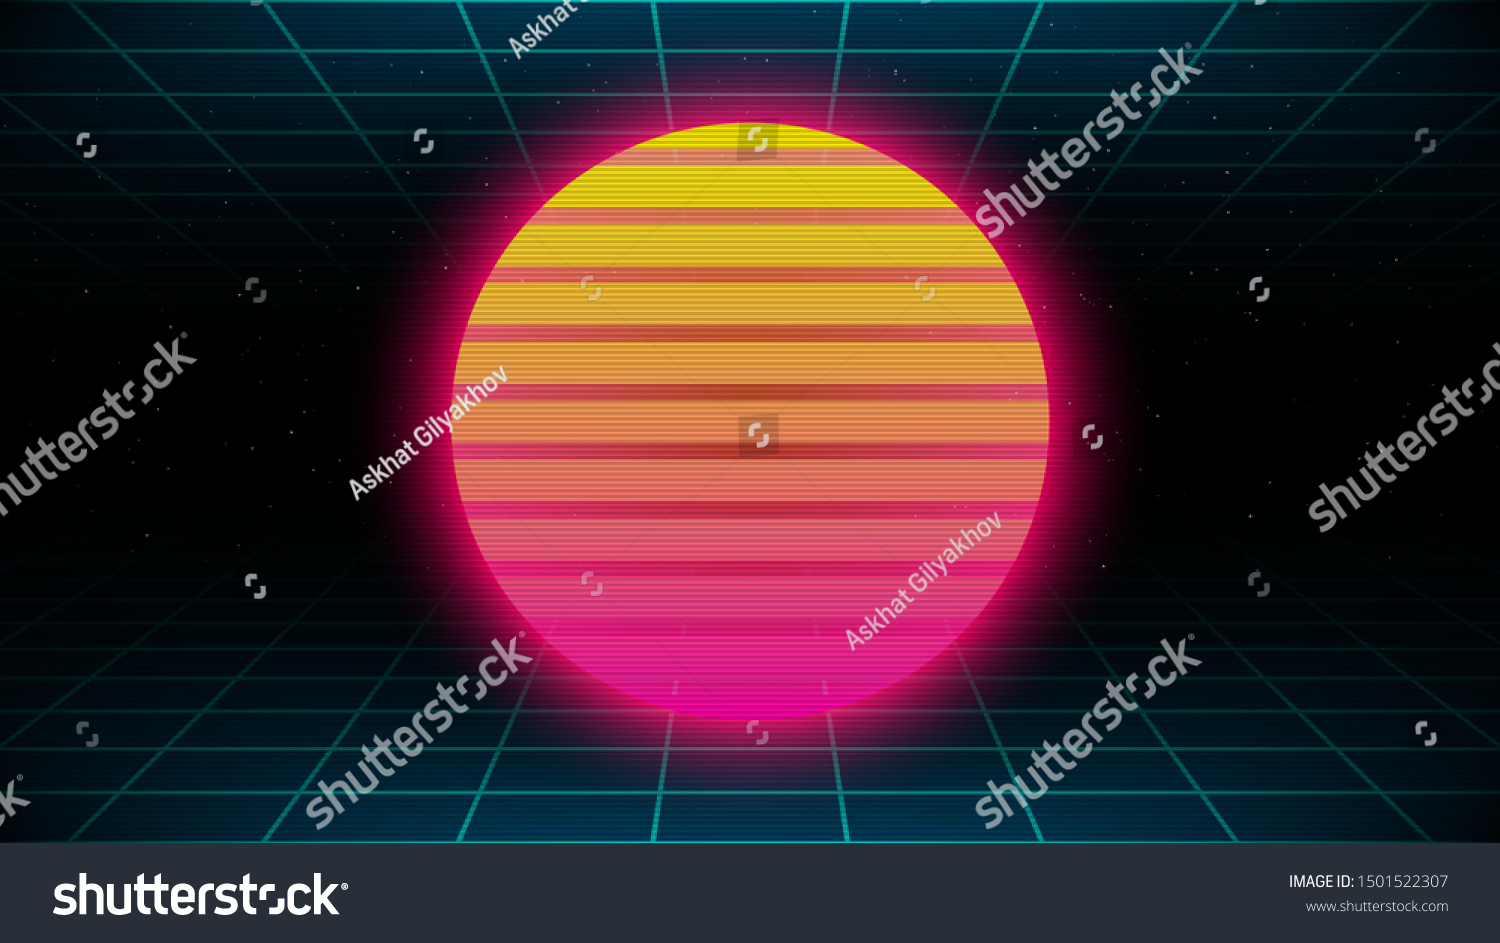 Retrowave Synthwave Vaporwave Yellow Pink Gradient Stock Vector Royalty Free 1501522307